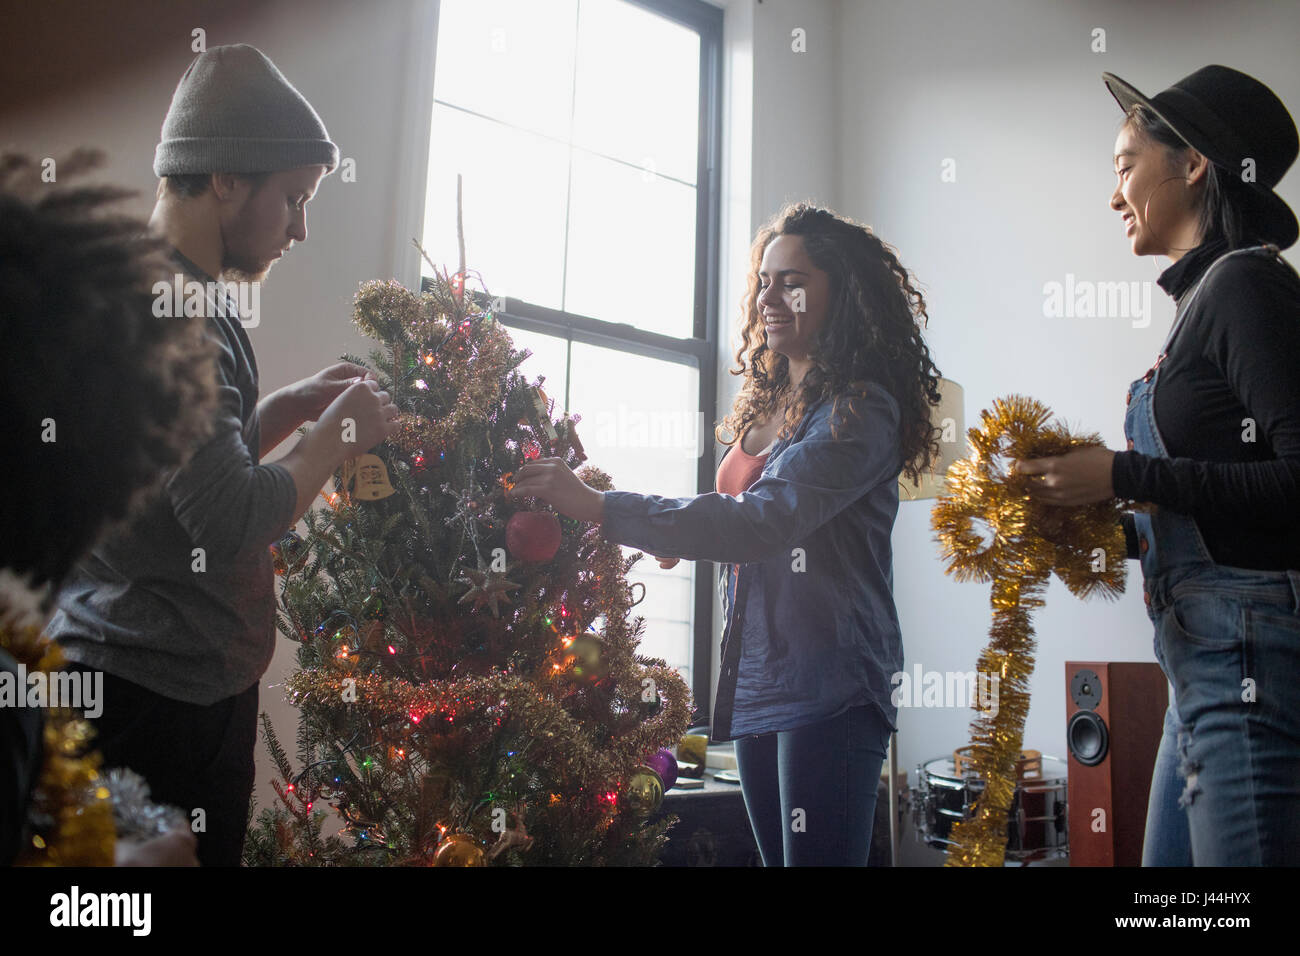 A group of people decorating a Christmas tree Stock Photo